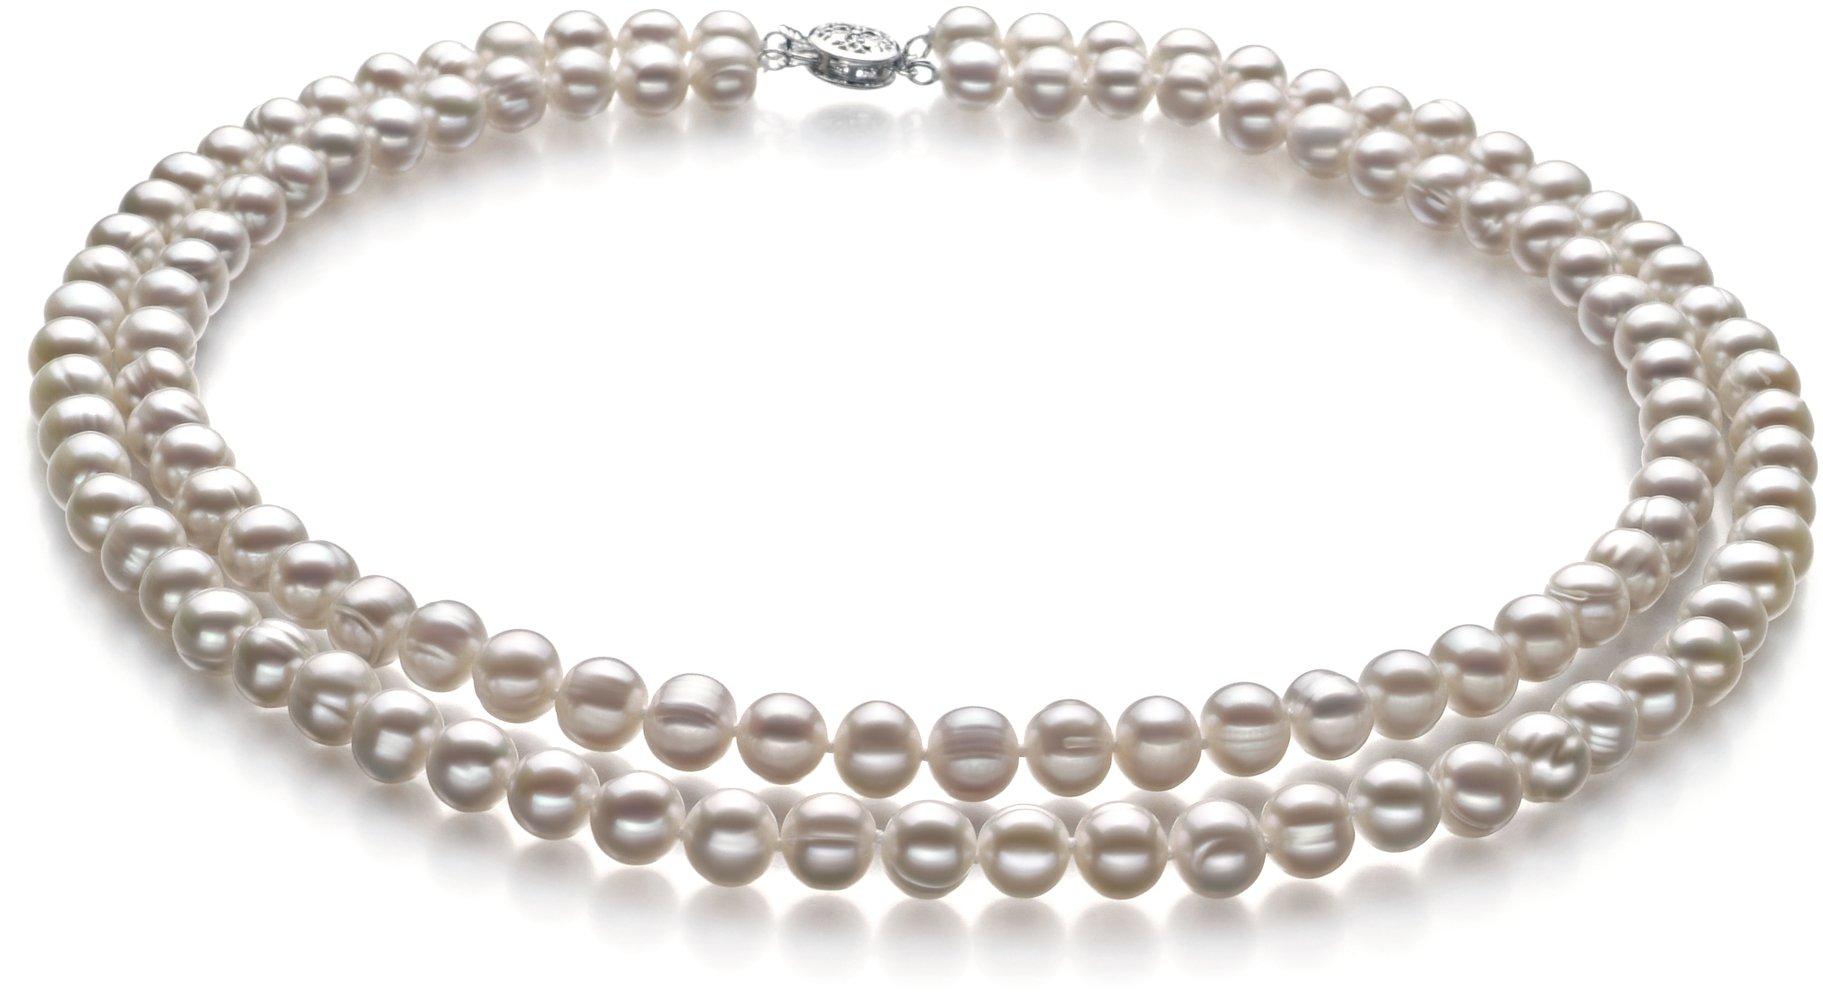 PearlsOnly - White 6-7mm A Quality Freshwater Cultured Pearl Set-16 in Chocker length by PearlsOnly (Image #2)